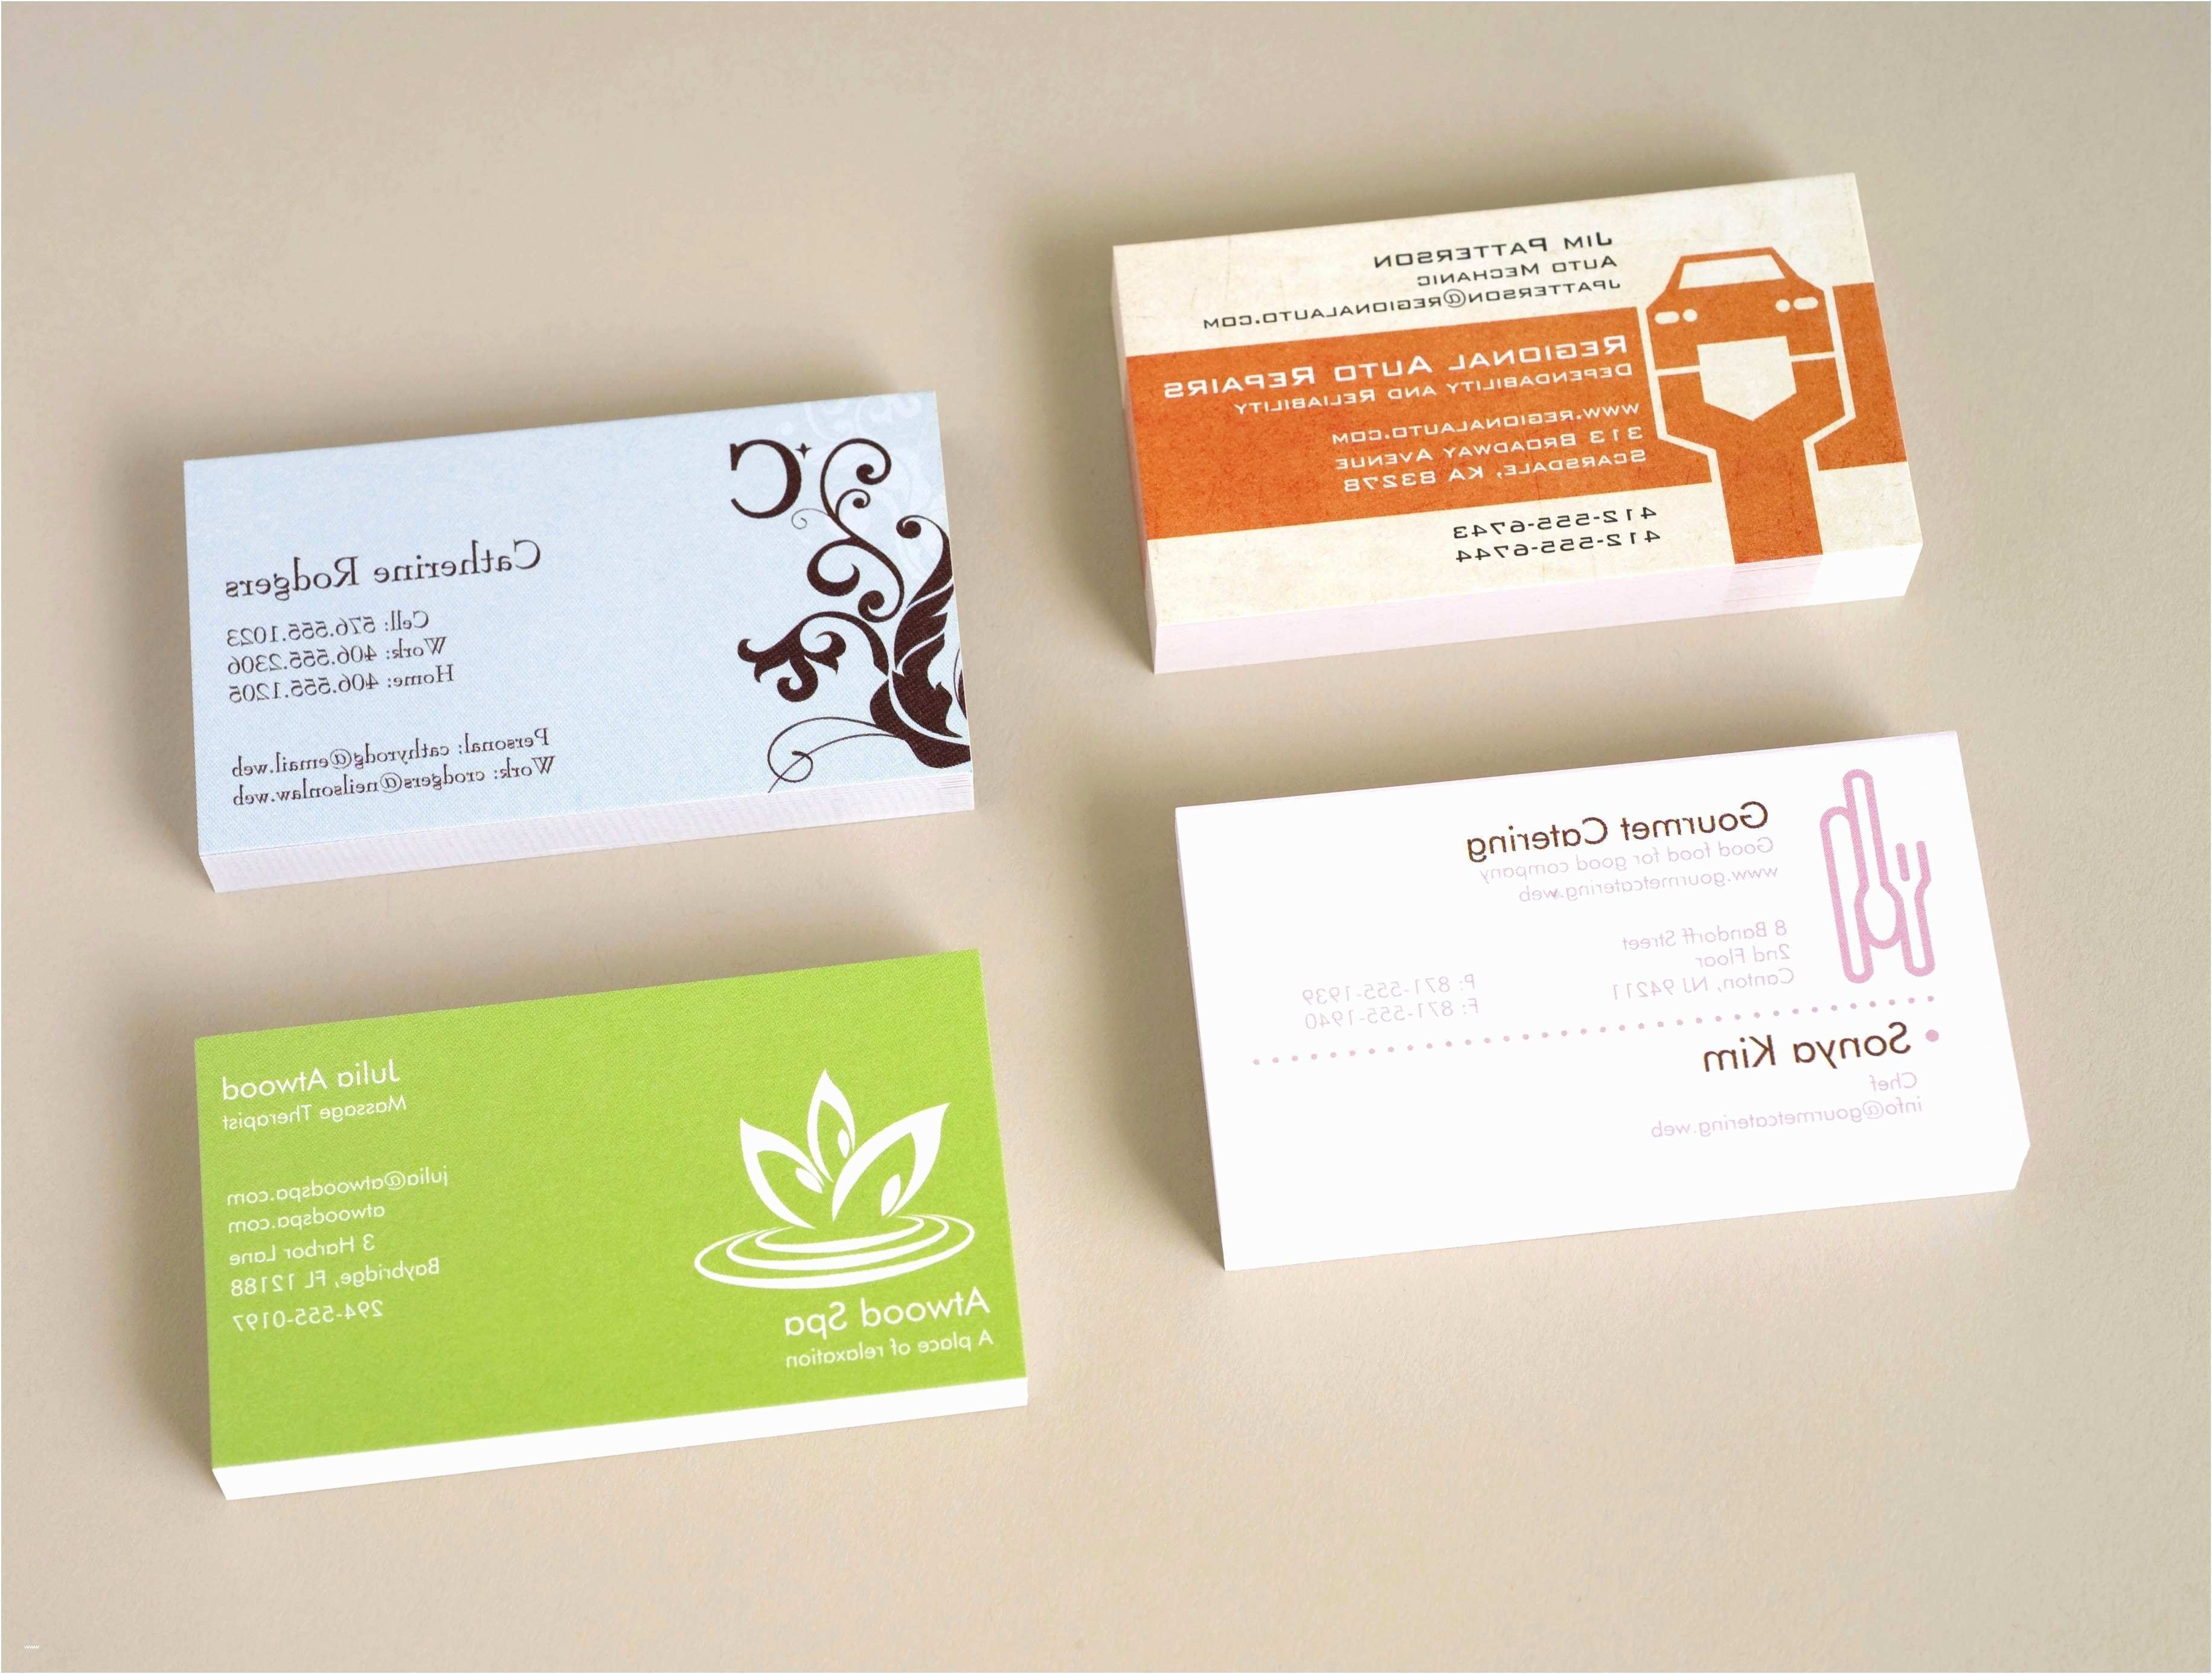 83 How To Create Avery Business Card Template Word 5871 in Photoshop by Avery Business Card Template Word 5871